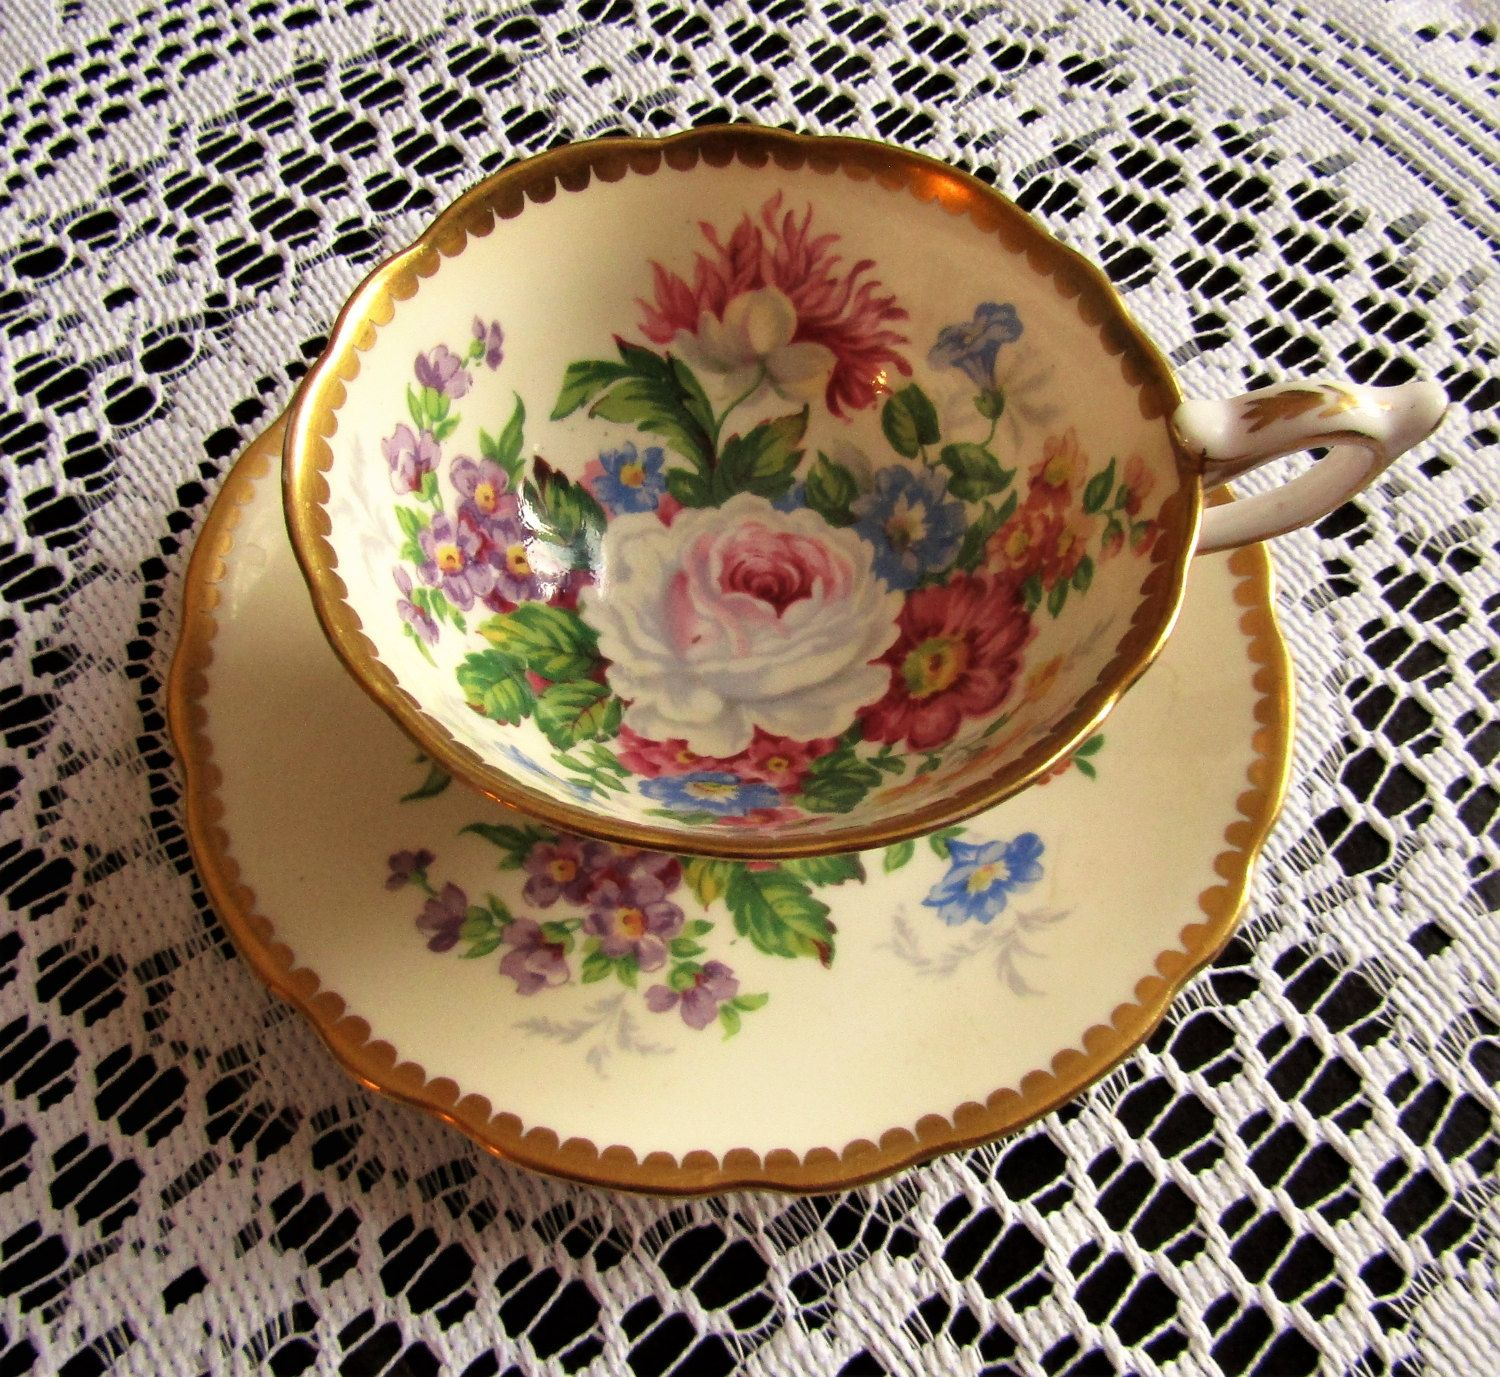 Royal albert bone china tea cup amp saucer winsome pattern ebay - Vintage Royal Stafford Bone China Tea Cup And Saucer Celebrity Made In England